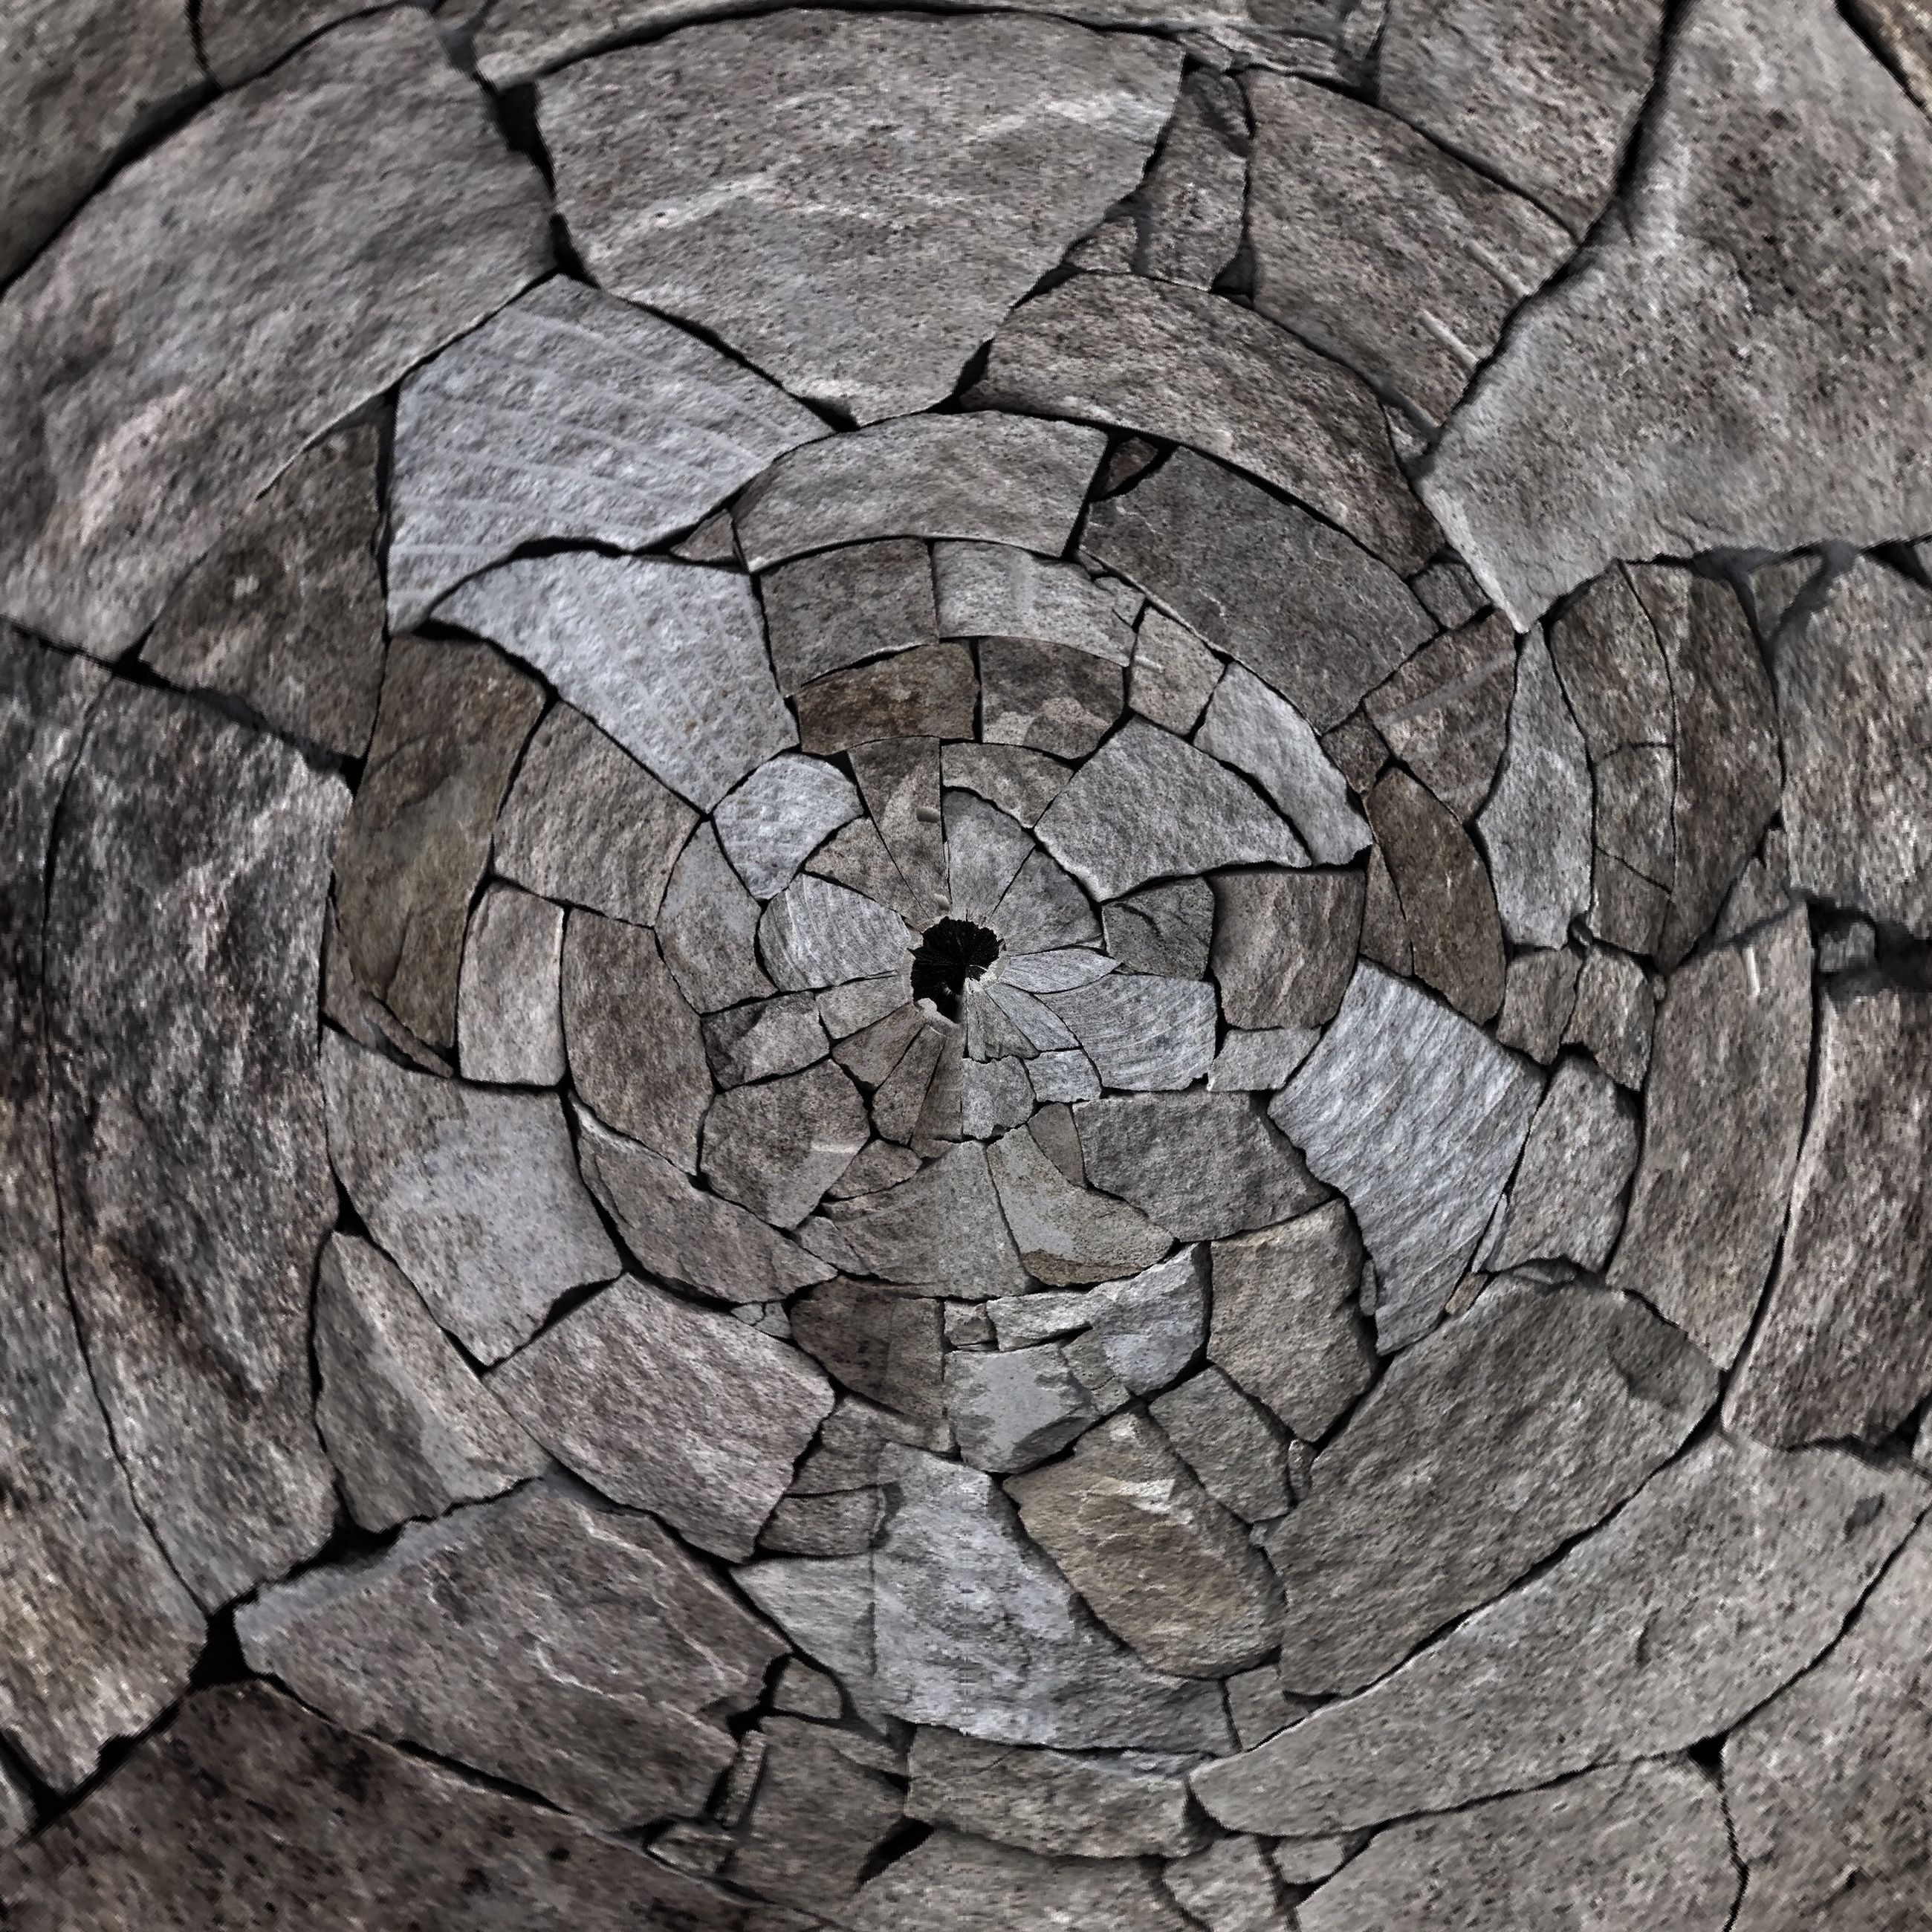 full frame, backgrounds, textured, pattern, cracked, rough, stone wall, natural pattern, rock - object, cobblestone, high angle view, close-up, stone, stone - object, day, no people, outdoors, stone material, nature, detail